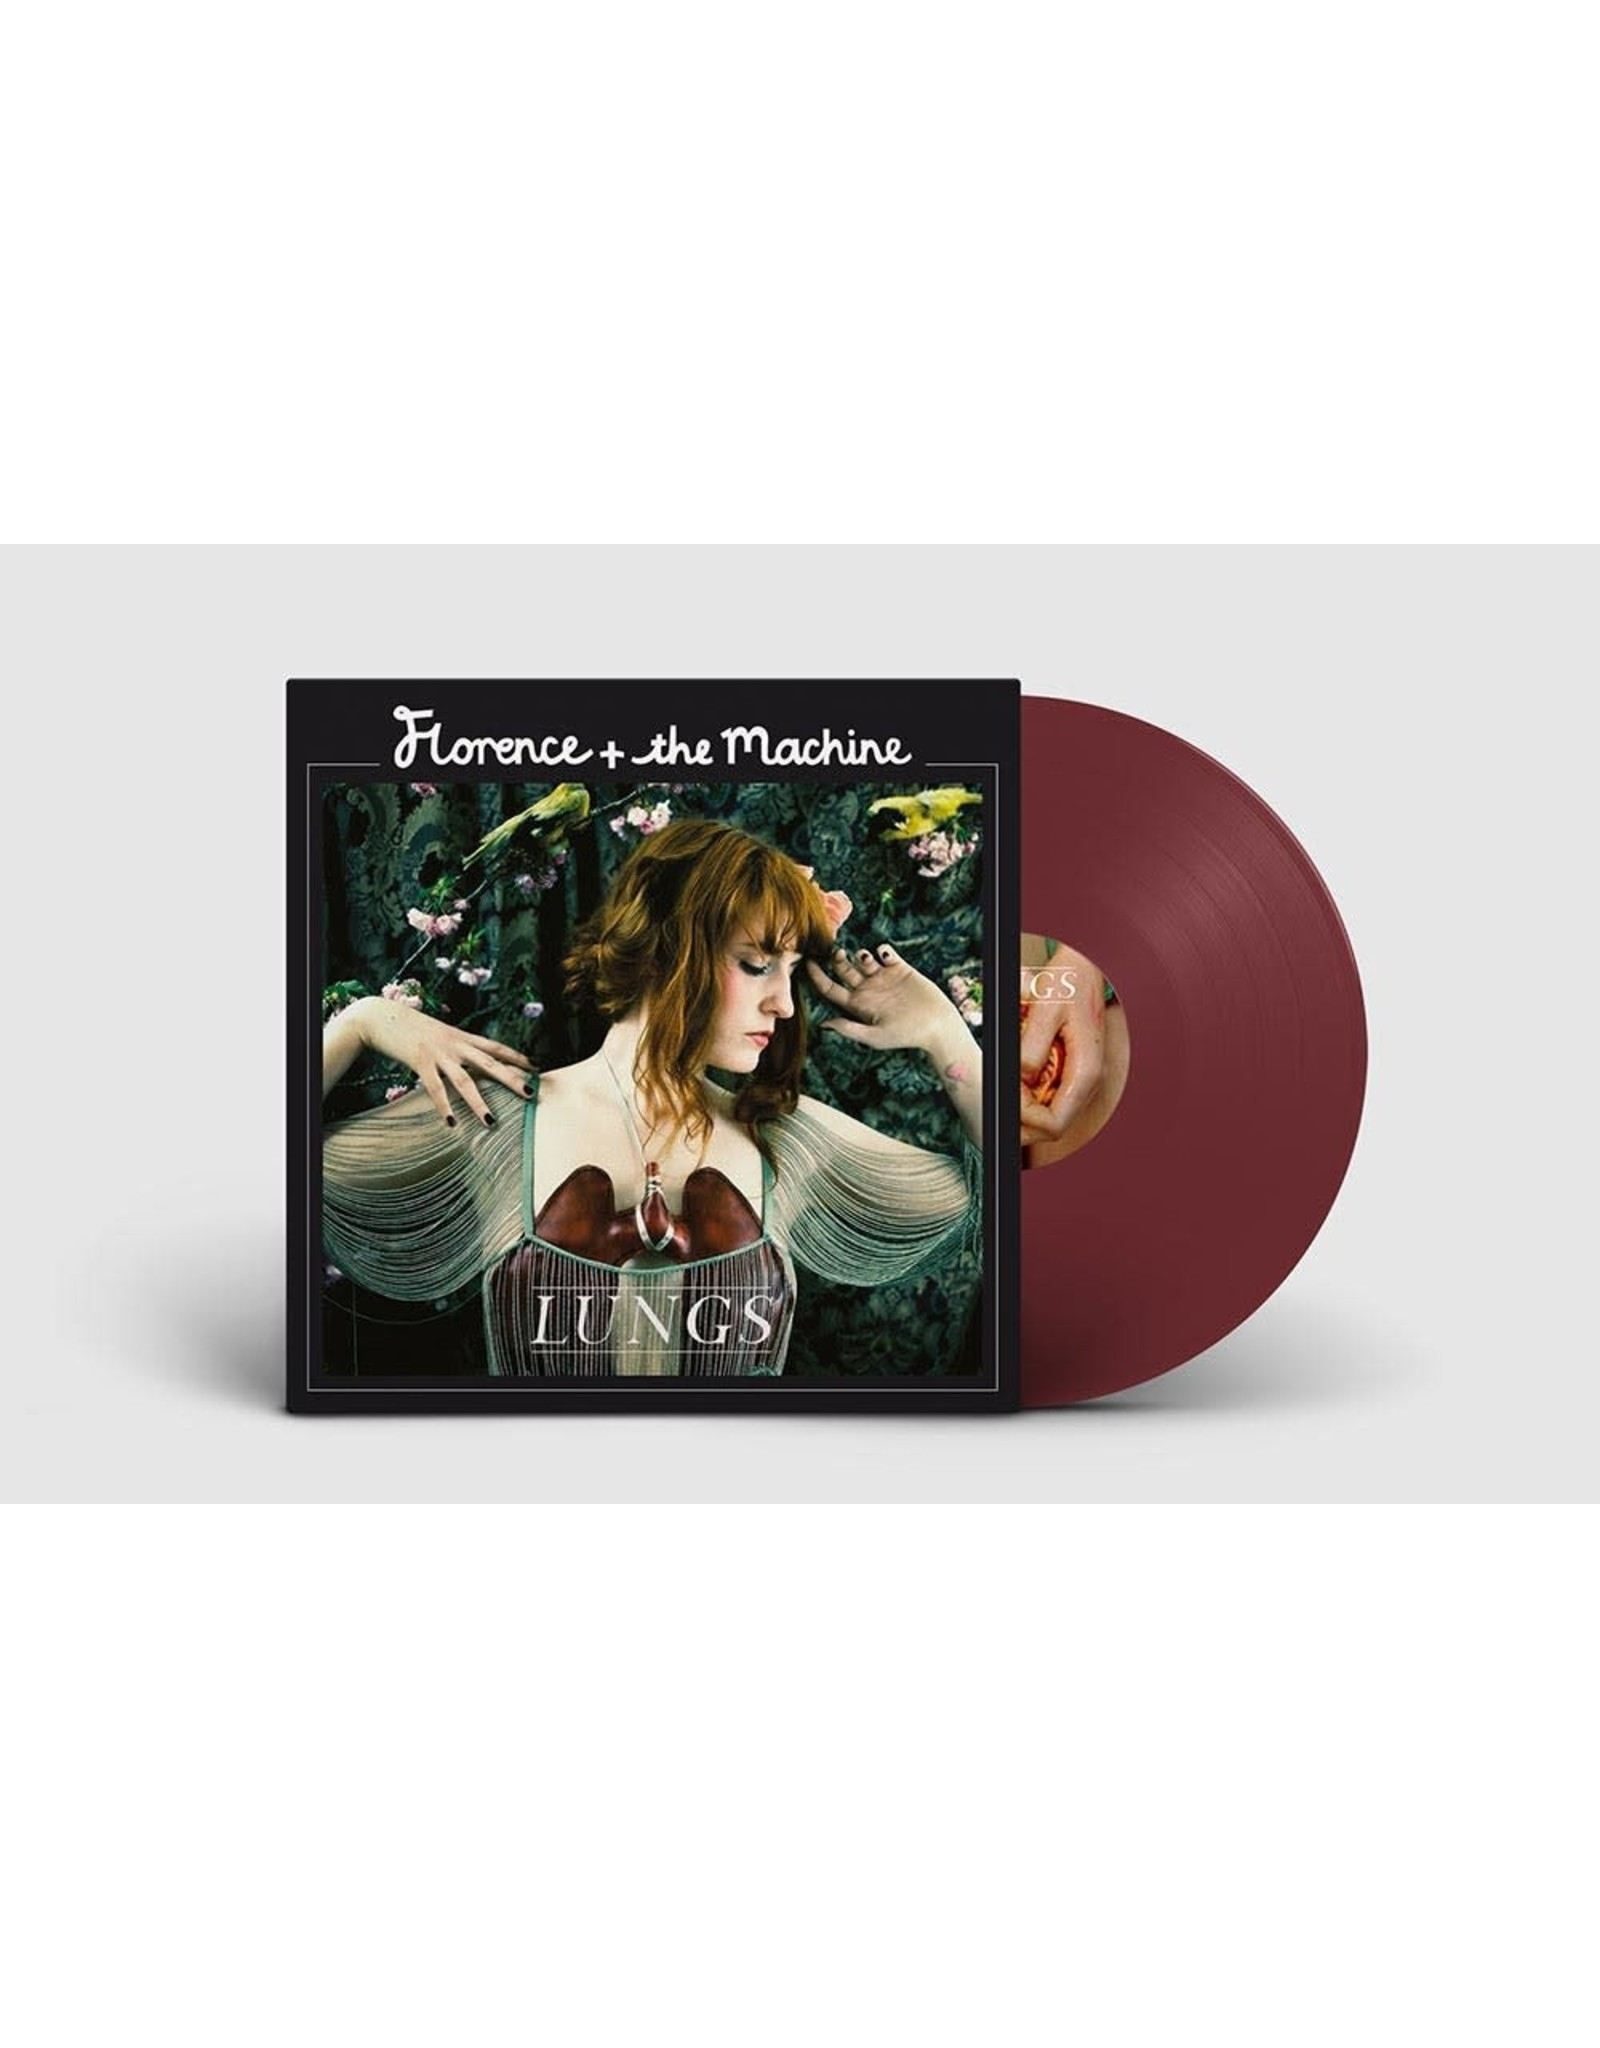 Florence + The Machine - Lungs (Red Vinyl)